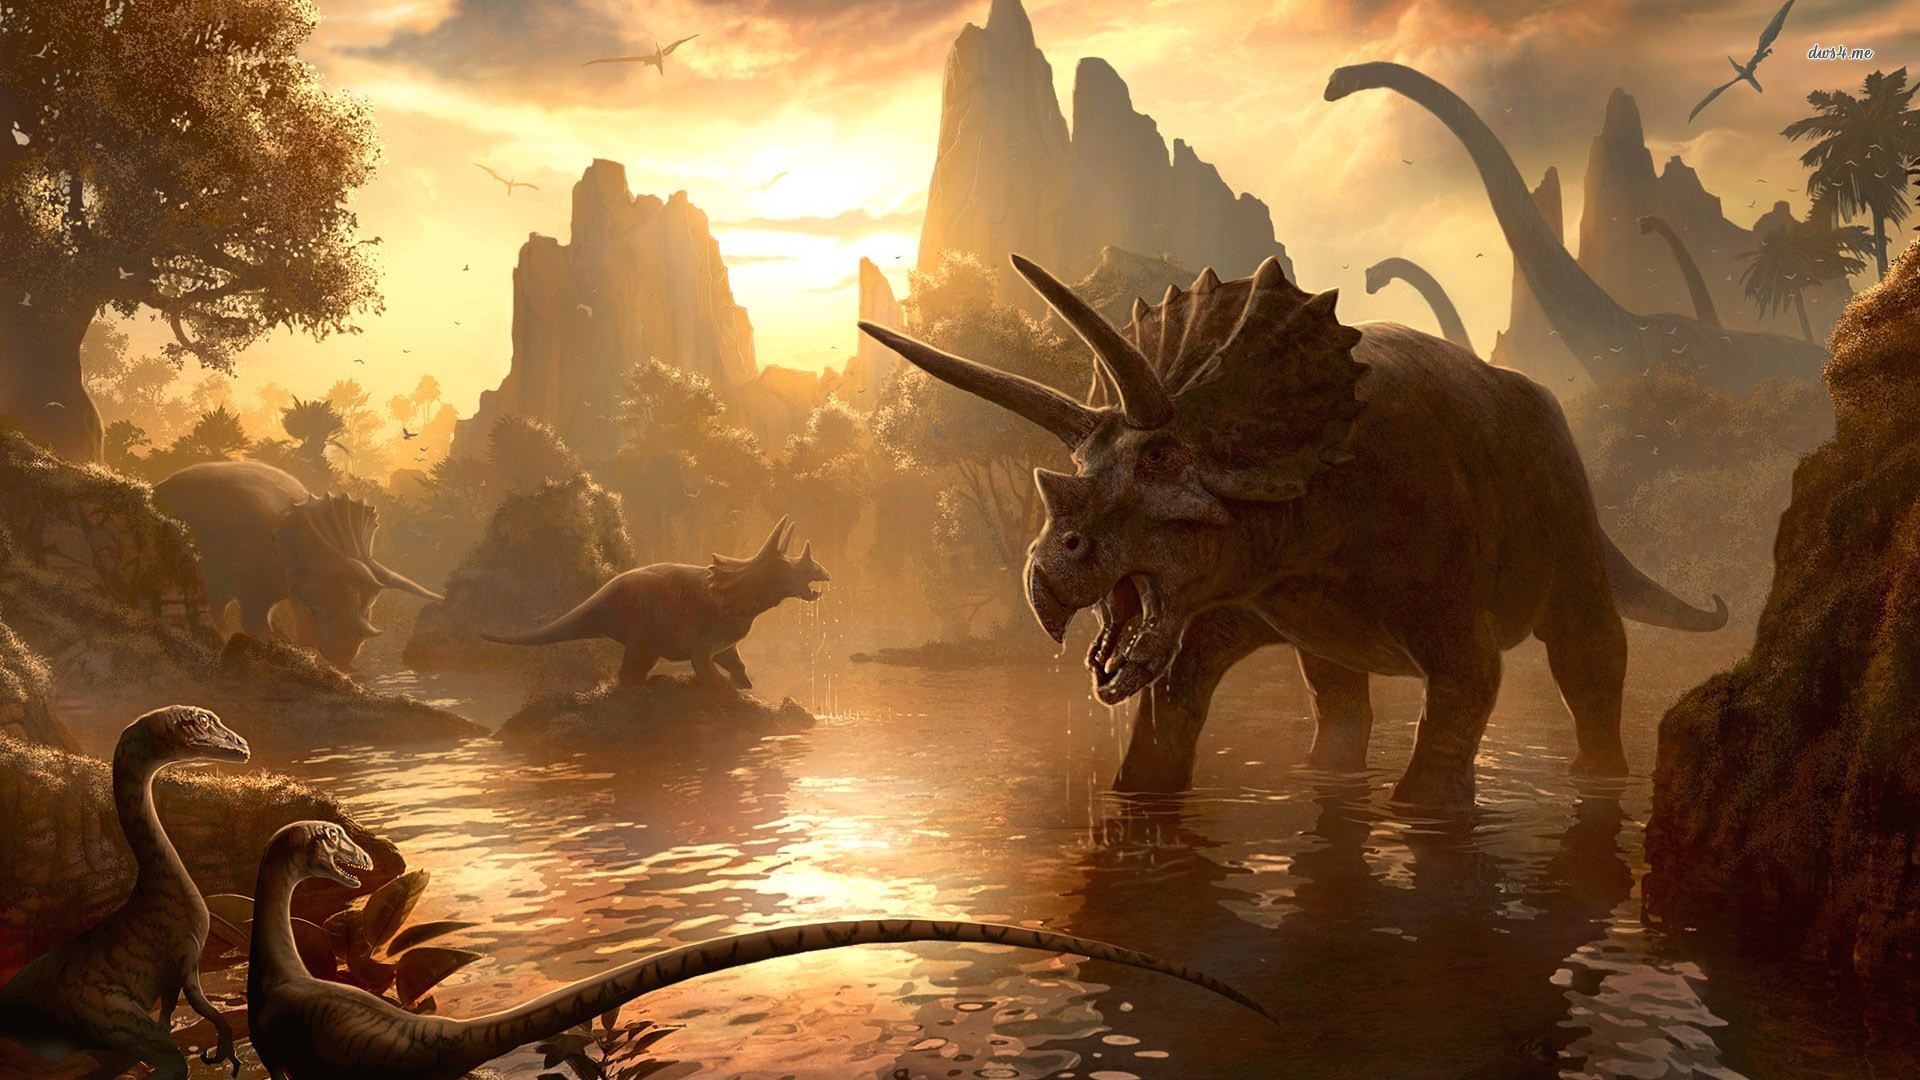 Wallpapers HD 1080P Dinosaurs Dinosaurs 1080p Wallpapers Dinosaurs 1920x1080